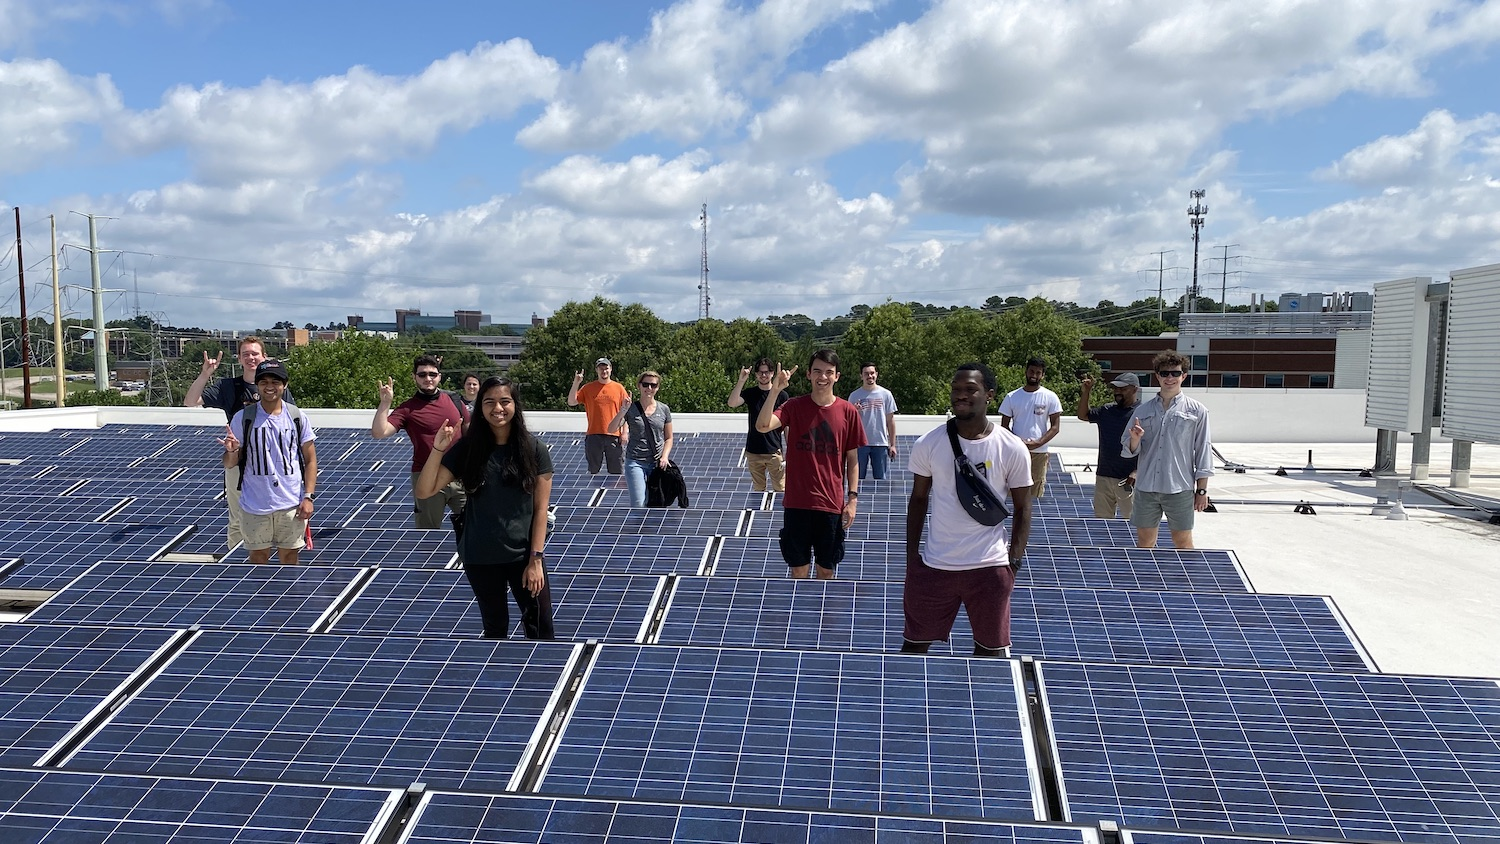 Group of students standing among rows of solar panels.